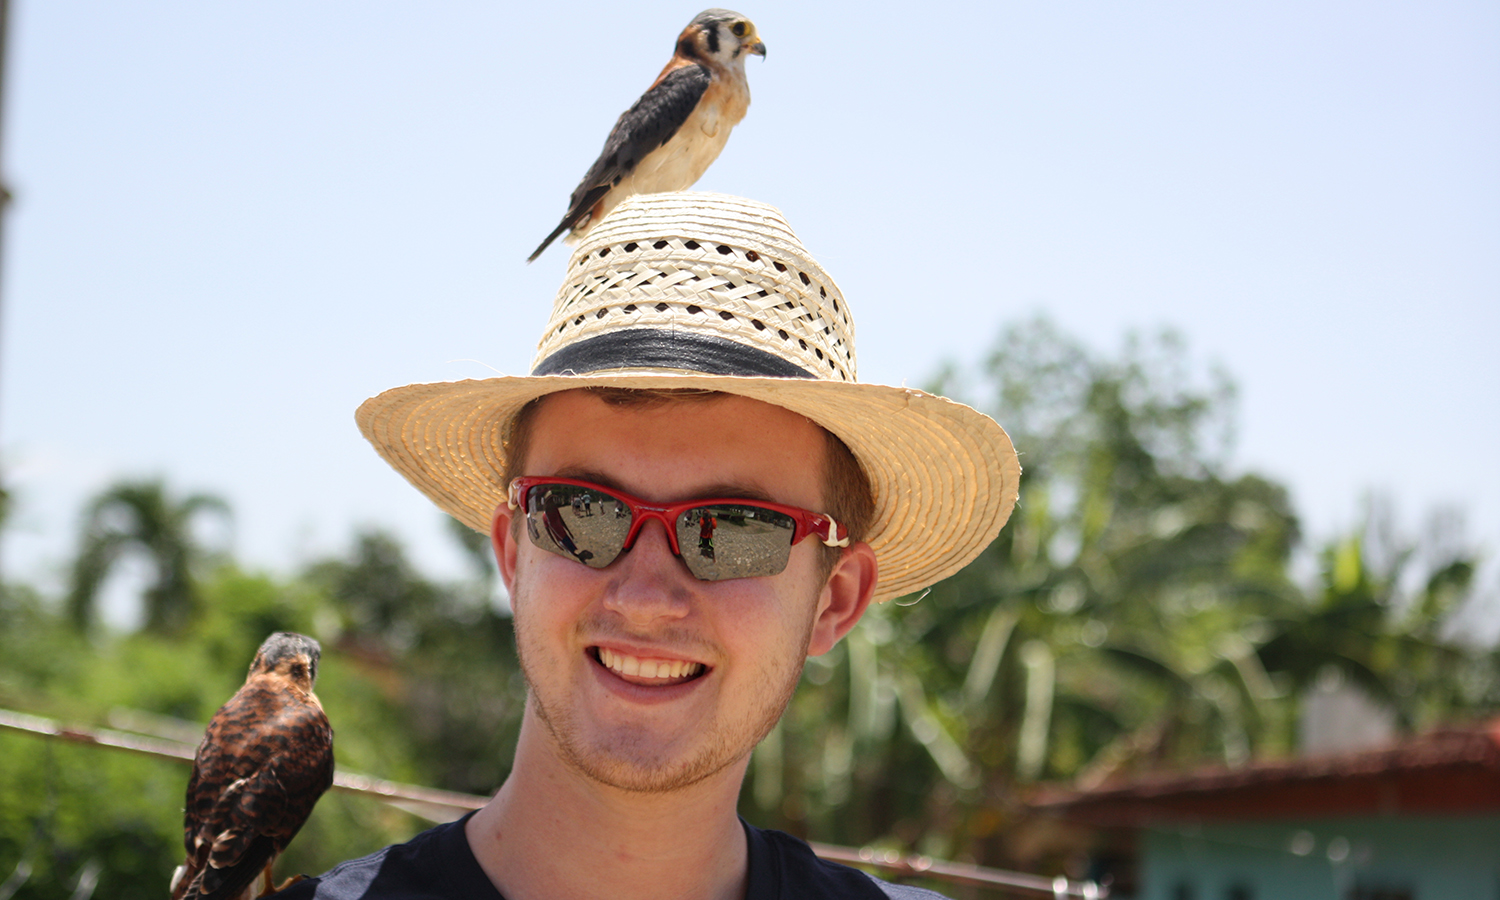 Grant Emerson '20 courageously hides his fear with a smile, as two 'domesticated' kestrels are thrown onto him by locals looking to make some money in Ciénaga de Zapata.